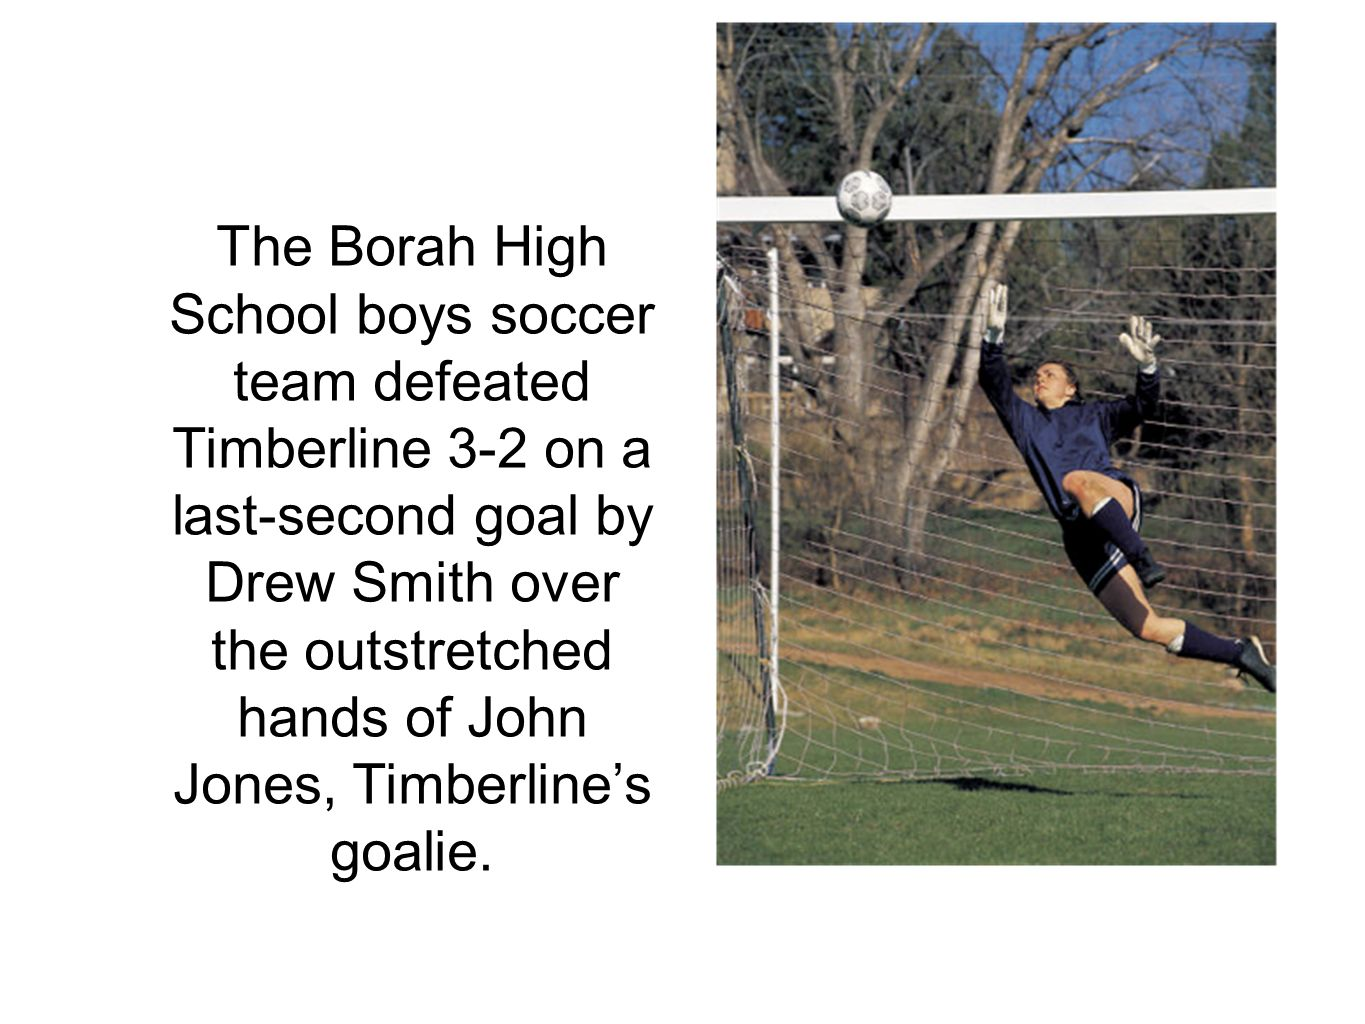 The Borah High School boys soccer team defeated Timberline 3-2 on a last-second goal by Drew Smith over the outstretched hands of John Jones, Timberline's goalie.